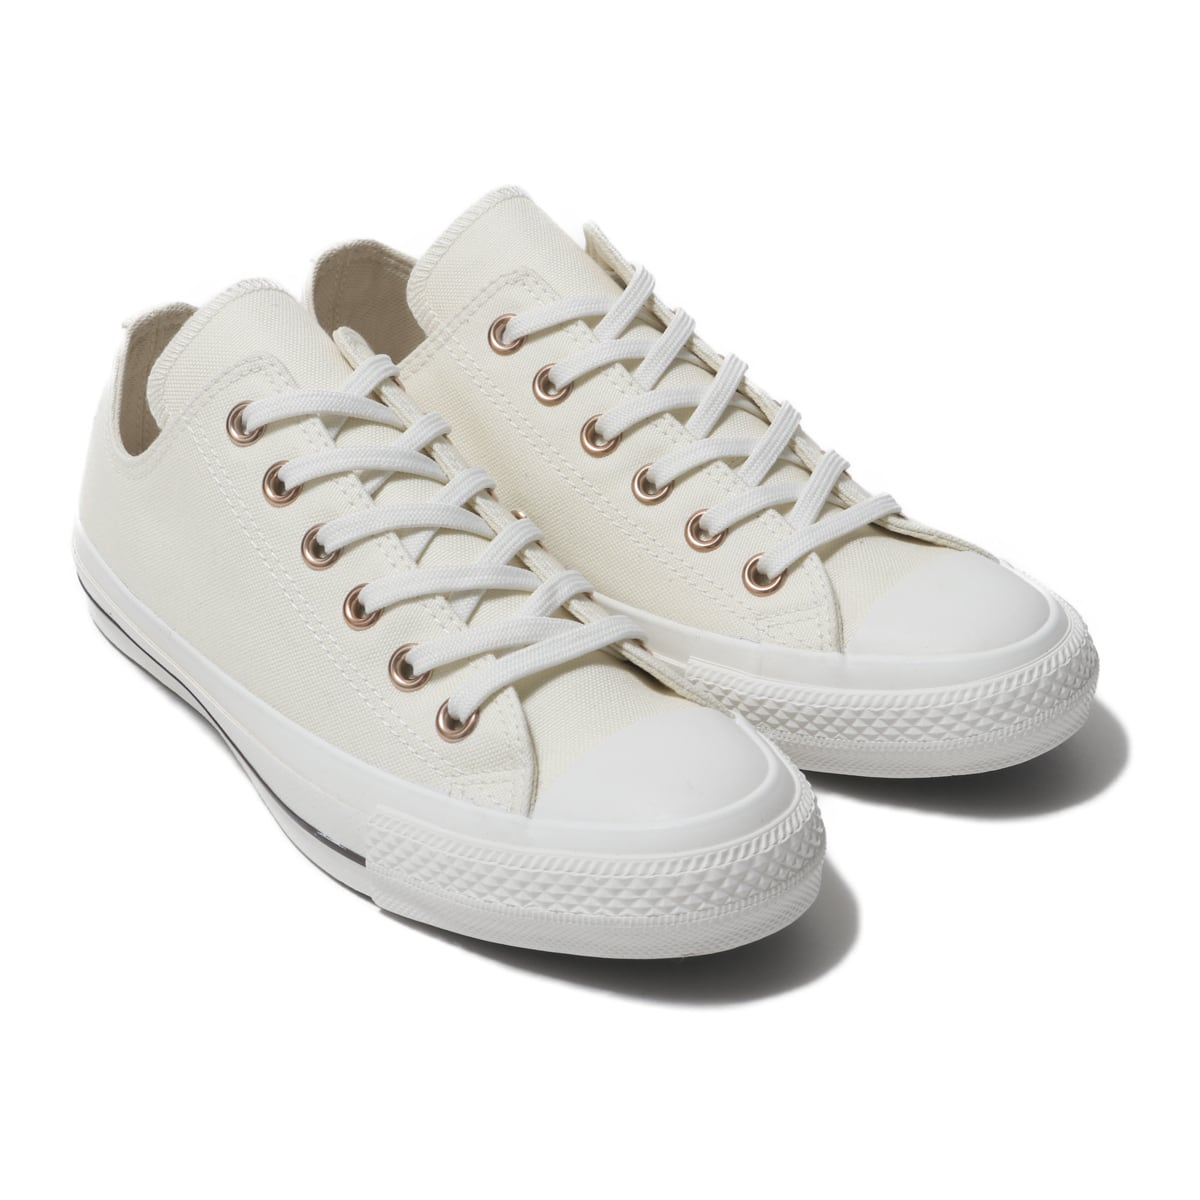 CONVERSE ALL STAR 100 PKG COLORS OX CREAM 19FA-S_photo_large